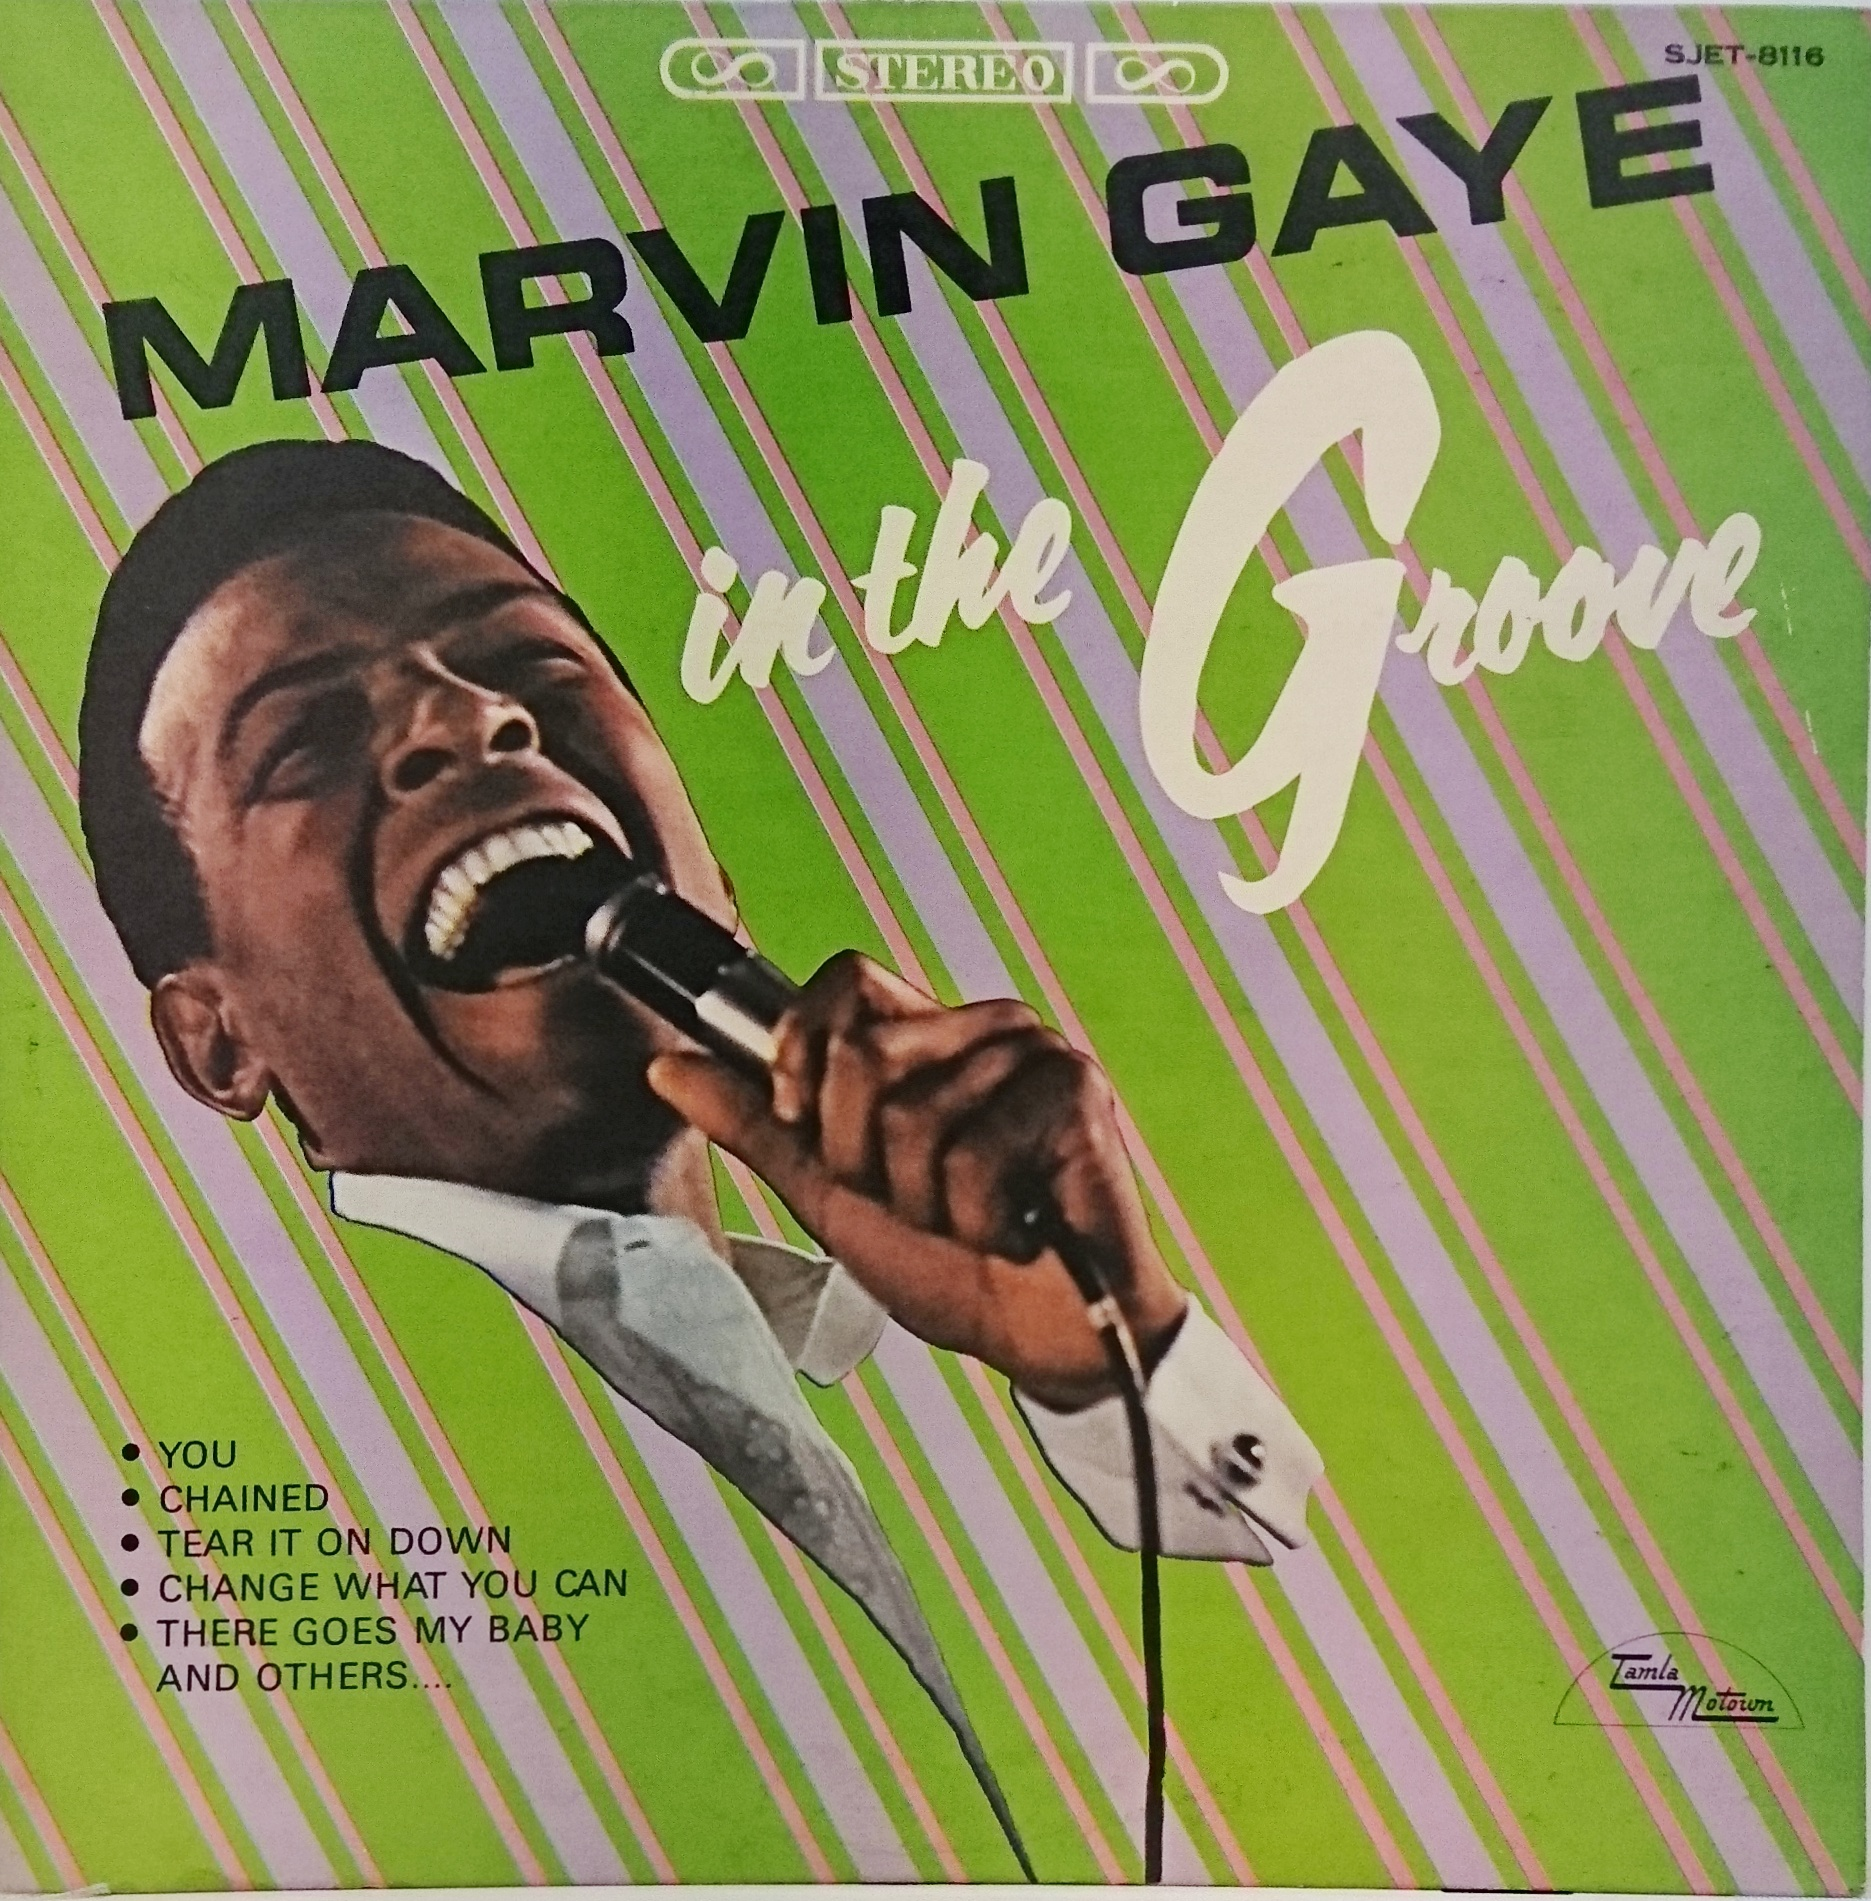 Marvin Gaye / In The Groove